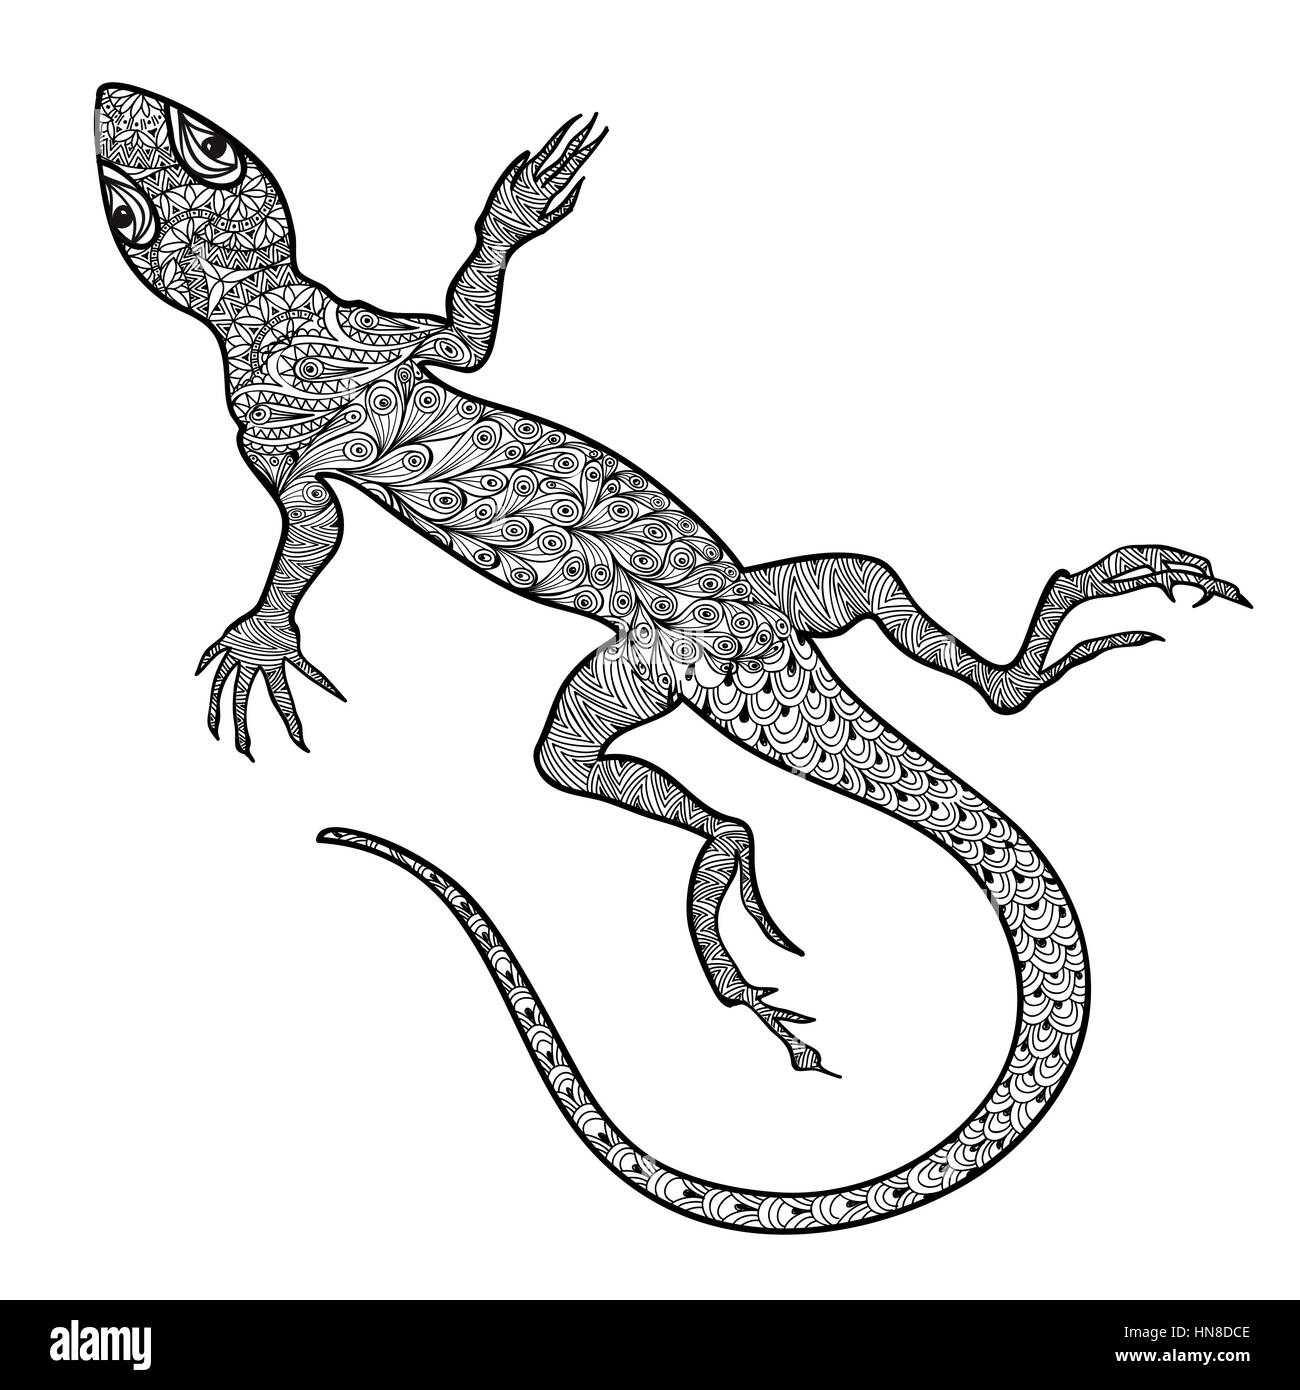 Lizard Isolated Hand Drawn Vector Salamander With Ethnic Tribal Ornamental Zentagle Pattern Sketch Of